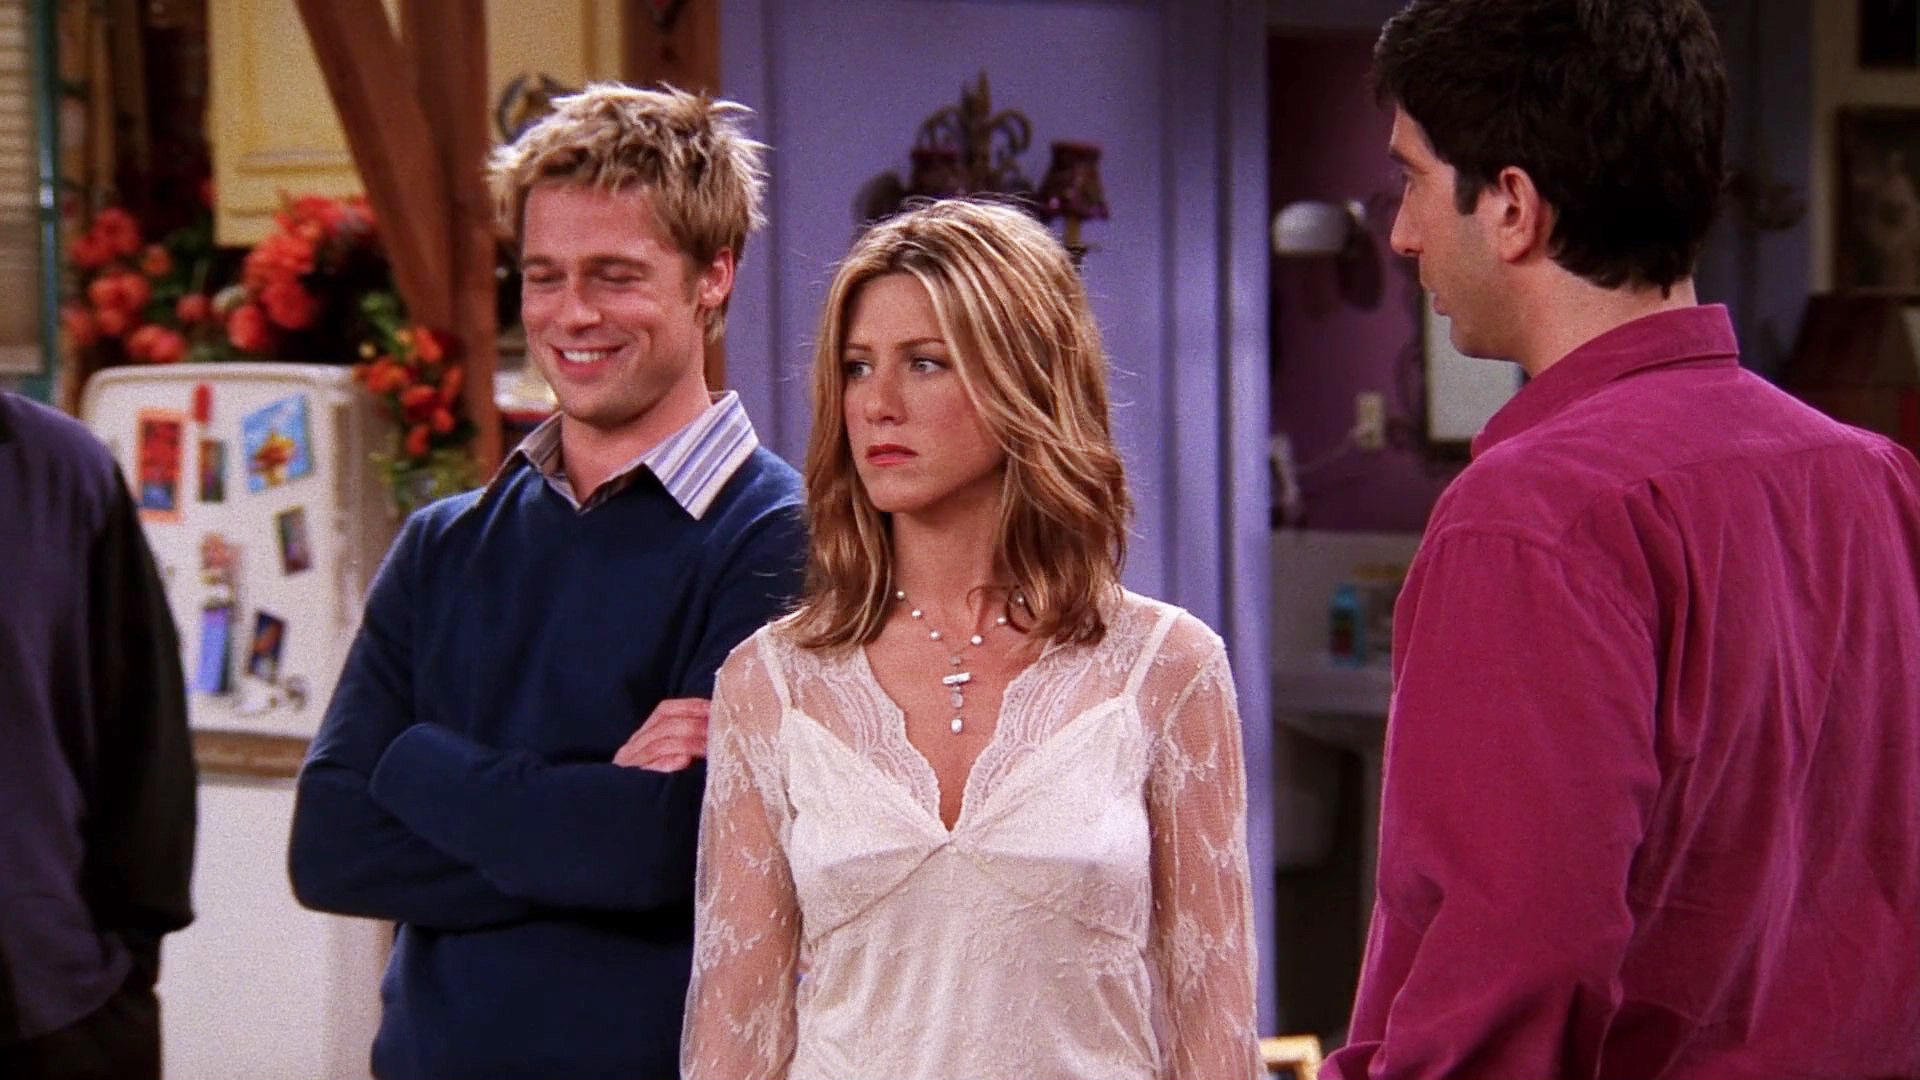 The One With The Red Sweater Summary - Friends Season 8, Episode 2 ...